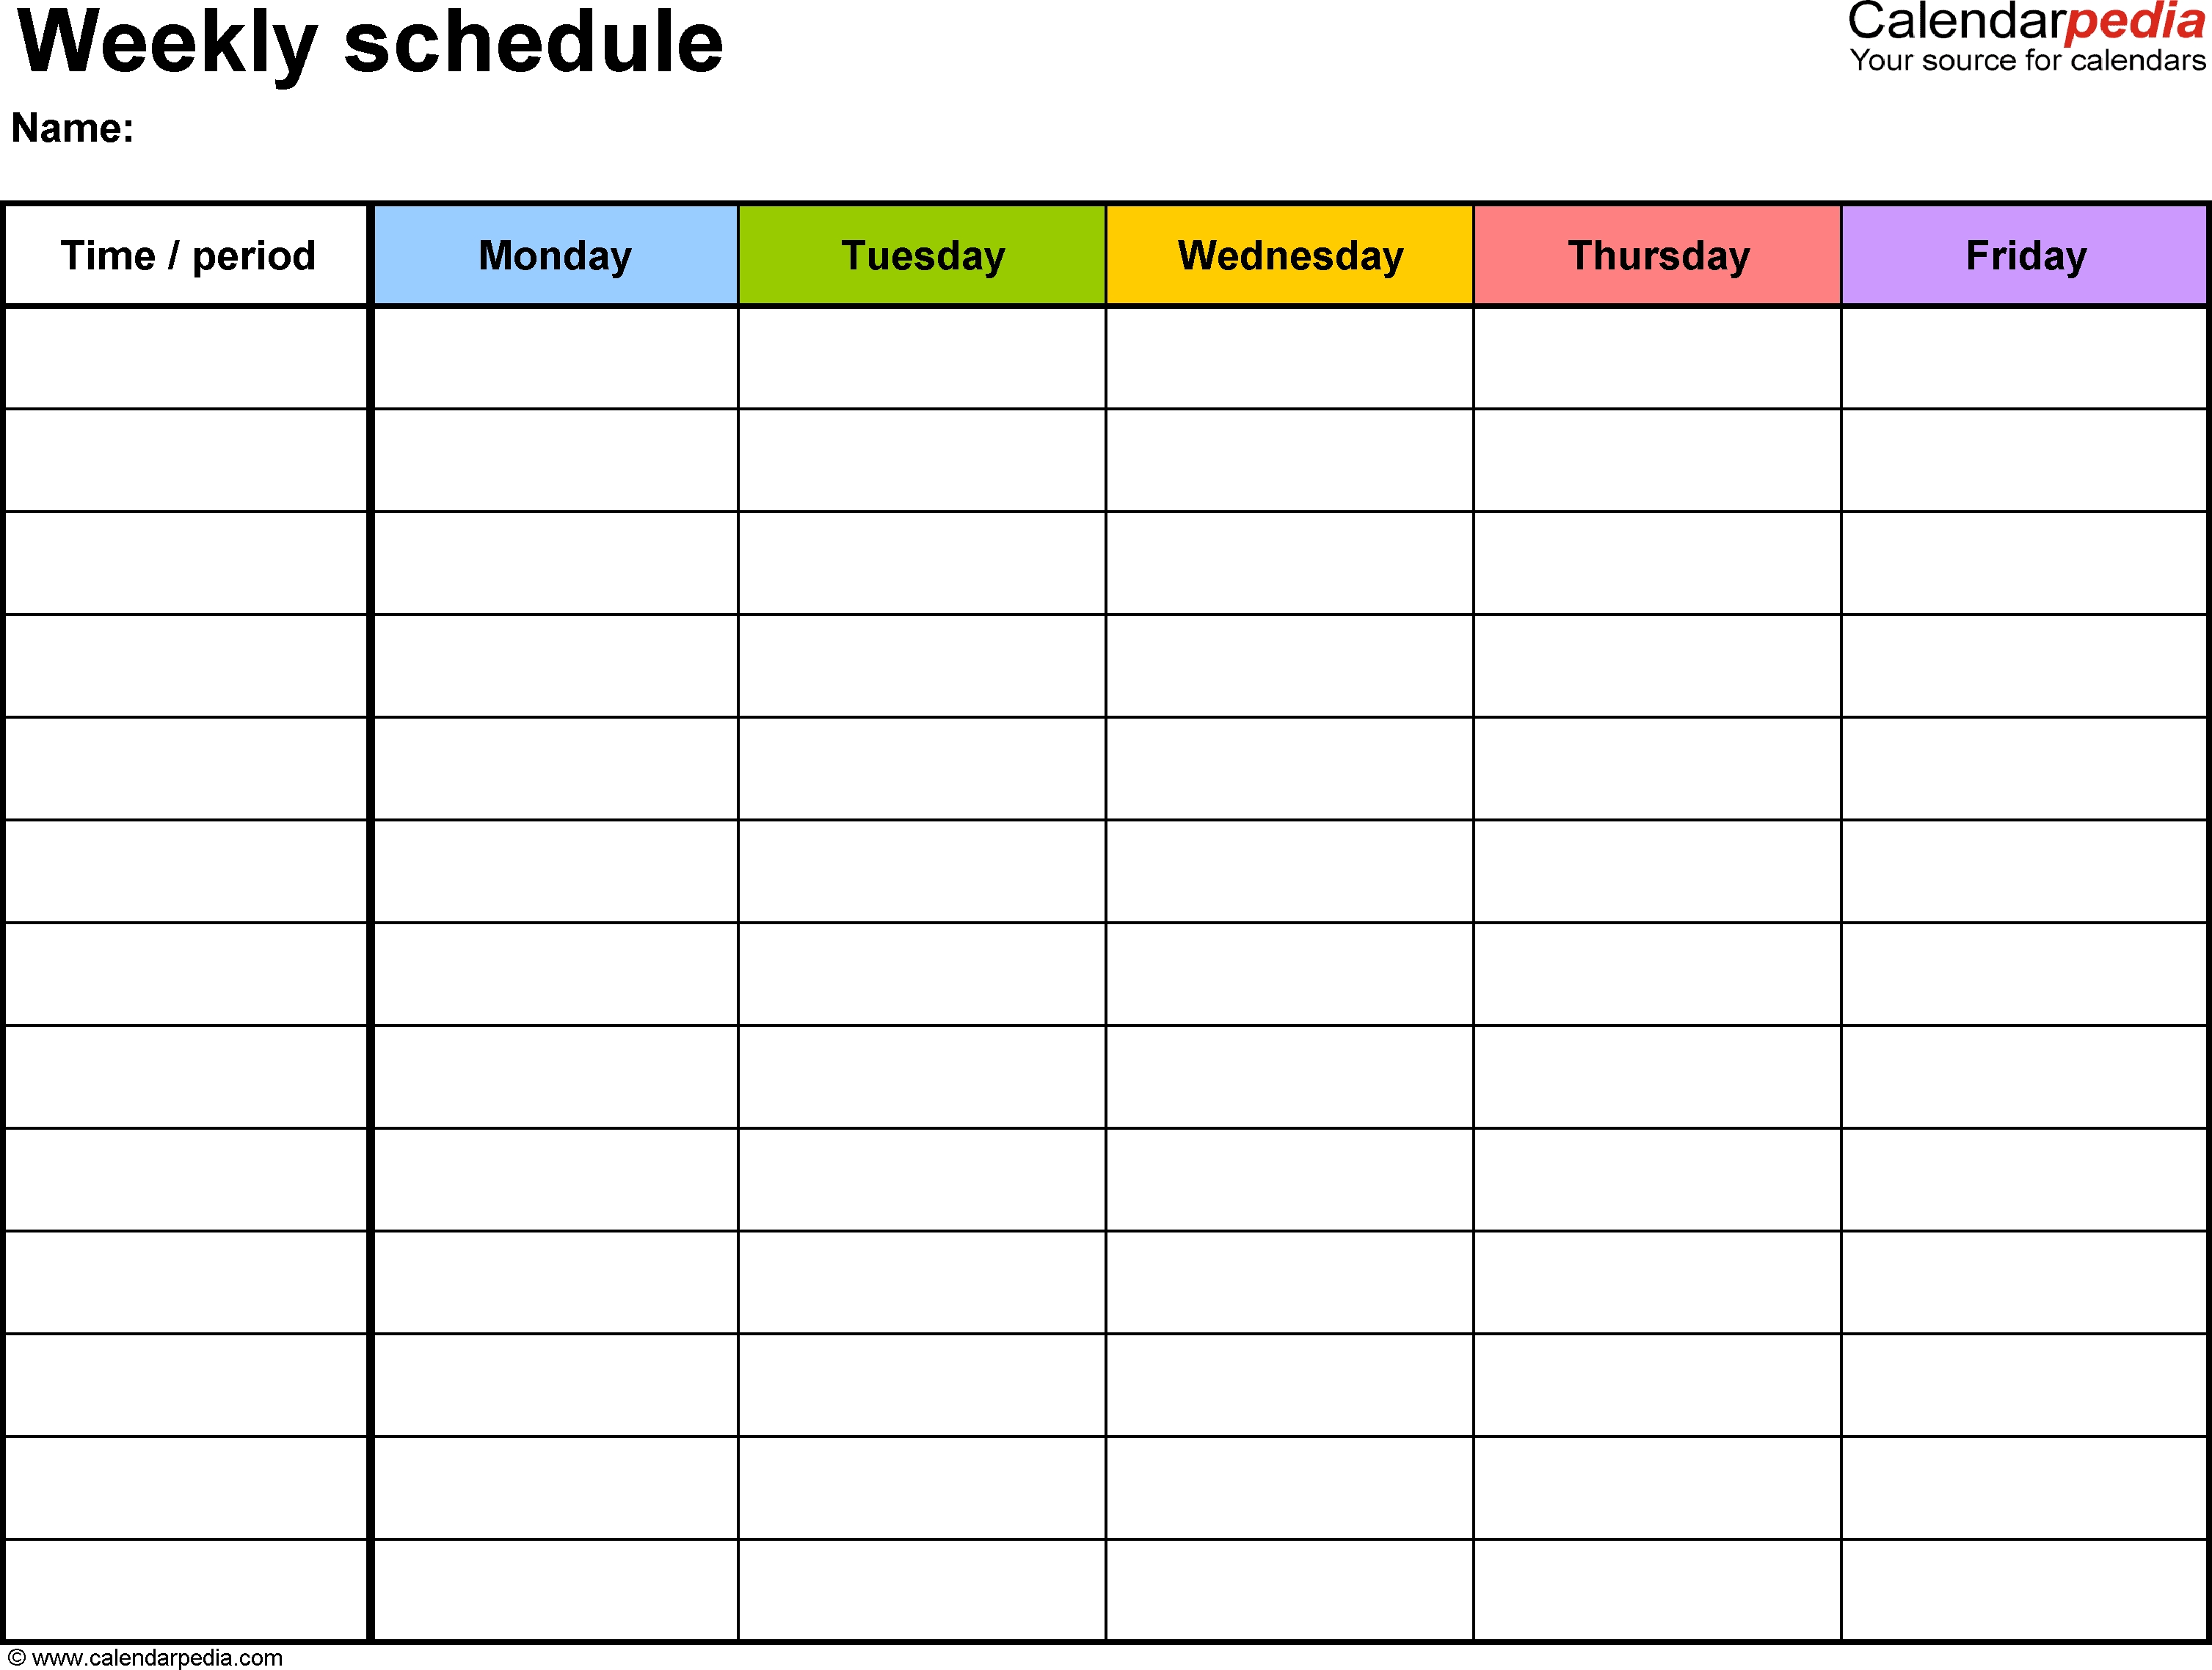 Daily Time Calendar - Yeniscale.co  Online Daily Time Slot Planner